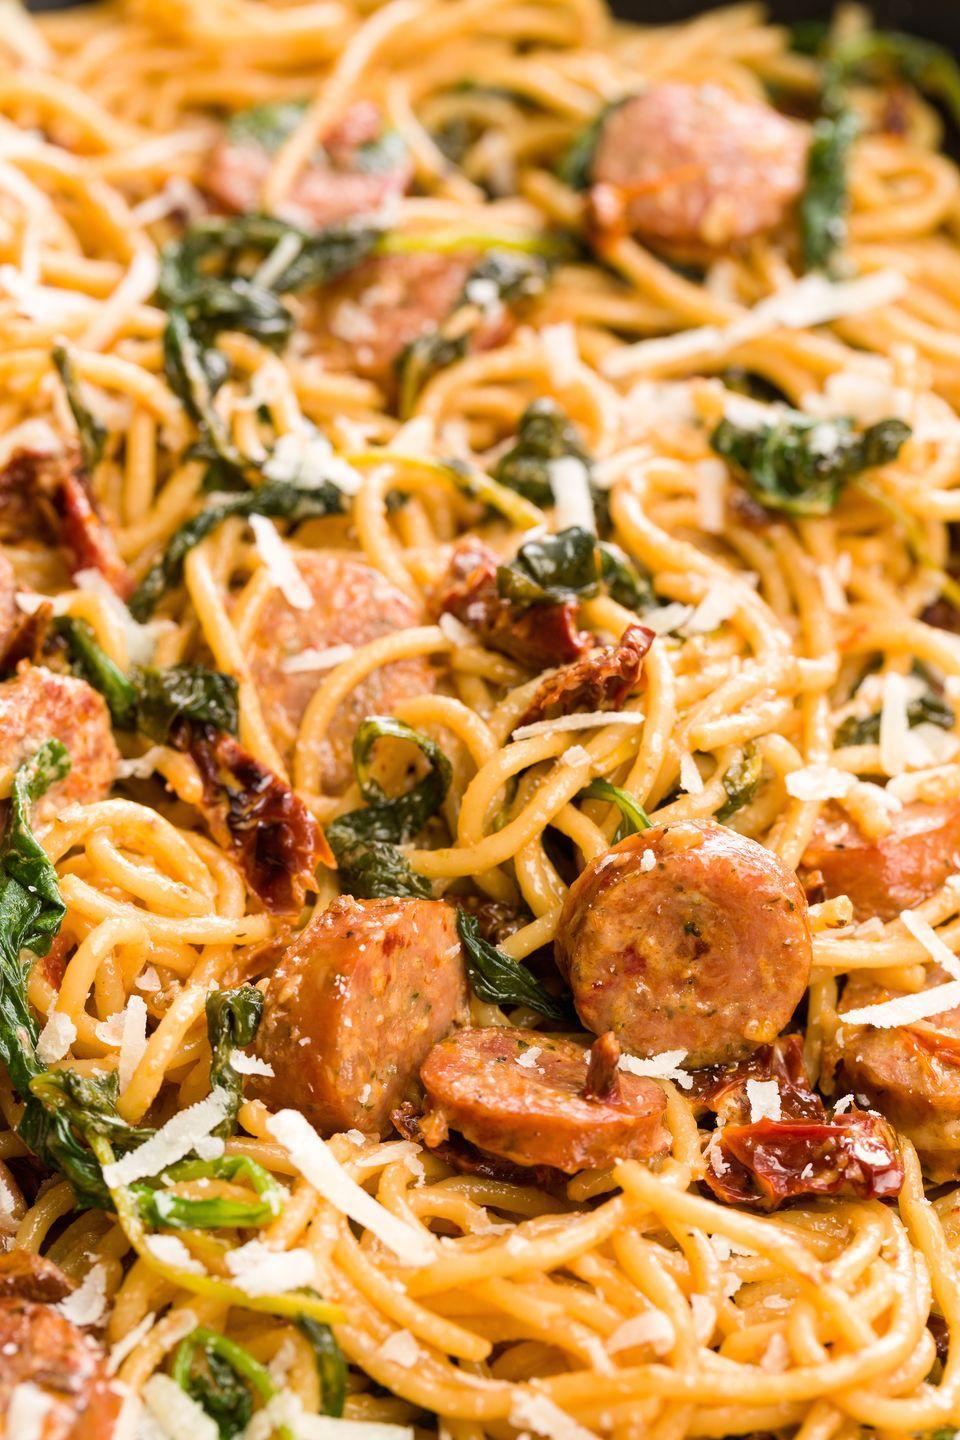 "<p>This meaty spaghetti in a cream sauce is the whole package for an easy dinner.</p><p>Get the recipe from <a href=""https://www.delish.com/cooking/recipe-ideas/recipes/a45764/spaghetti-with-sun-dried-tomatoes-sausage-and-spinach-recipe/"" rel=""nofollow noopener"" target=""_blank"" data-ylk=""slk:Delish"" class=""link rapid-noclick-resp"">Delish</a>.</p>"